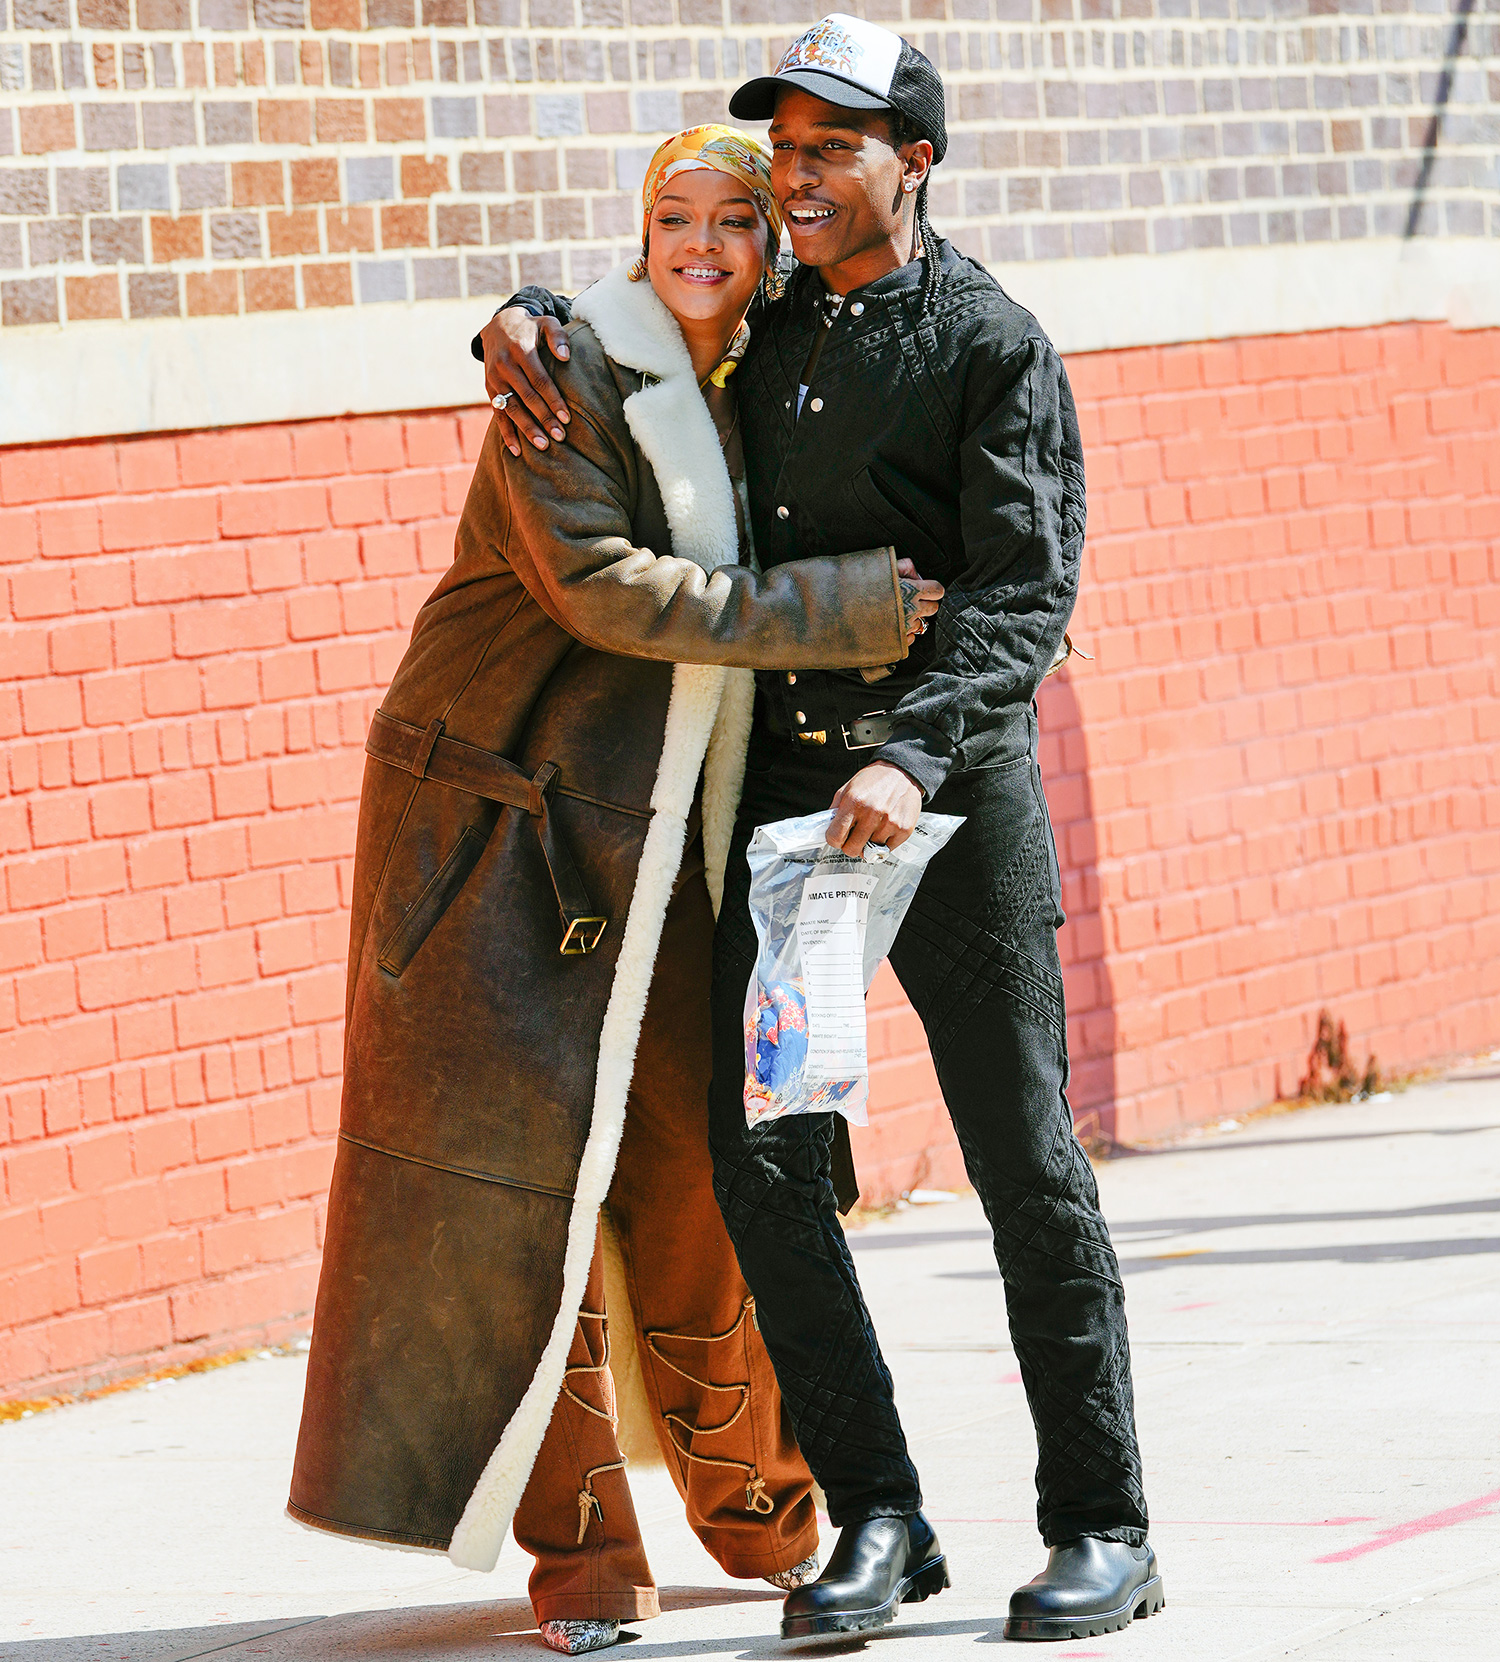 Rihanna and A$AP Rocky are seen on set for a music video on July 10, 2021 in New York City.